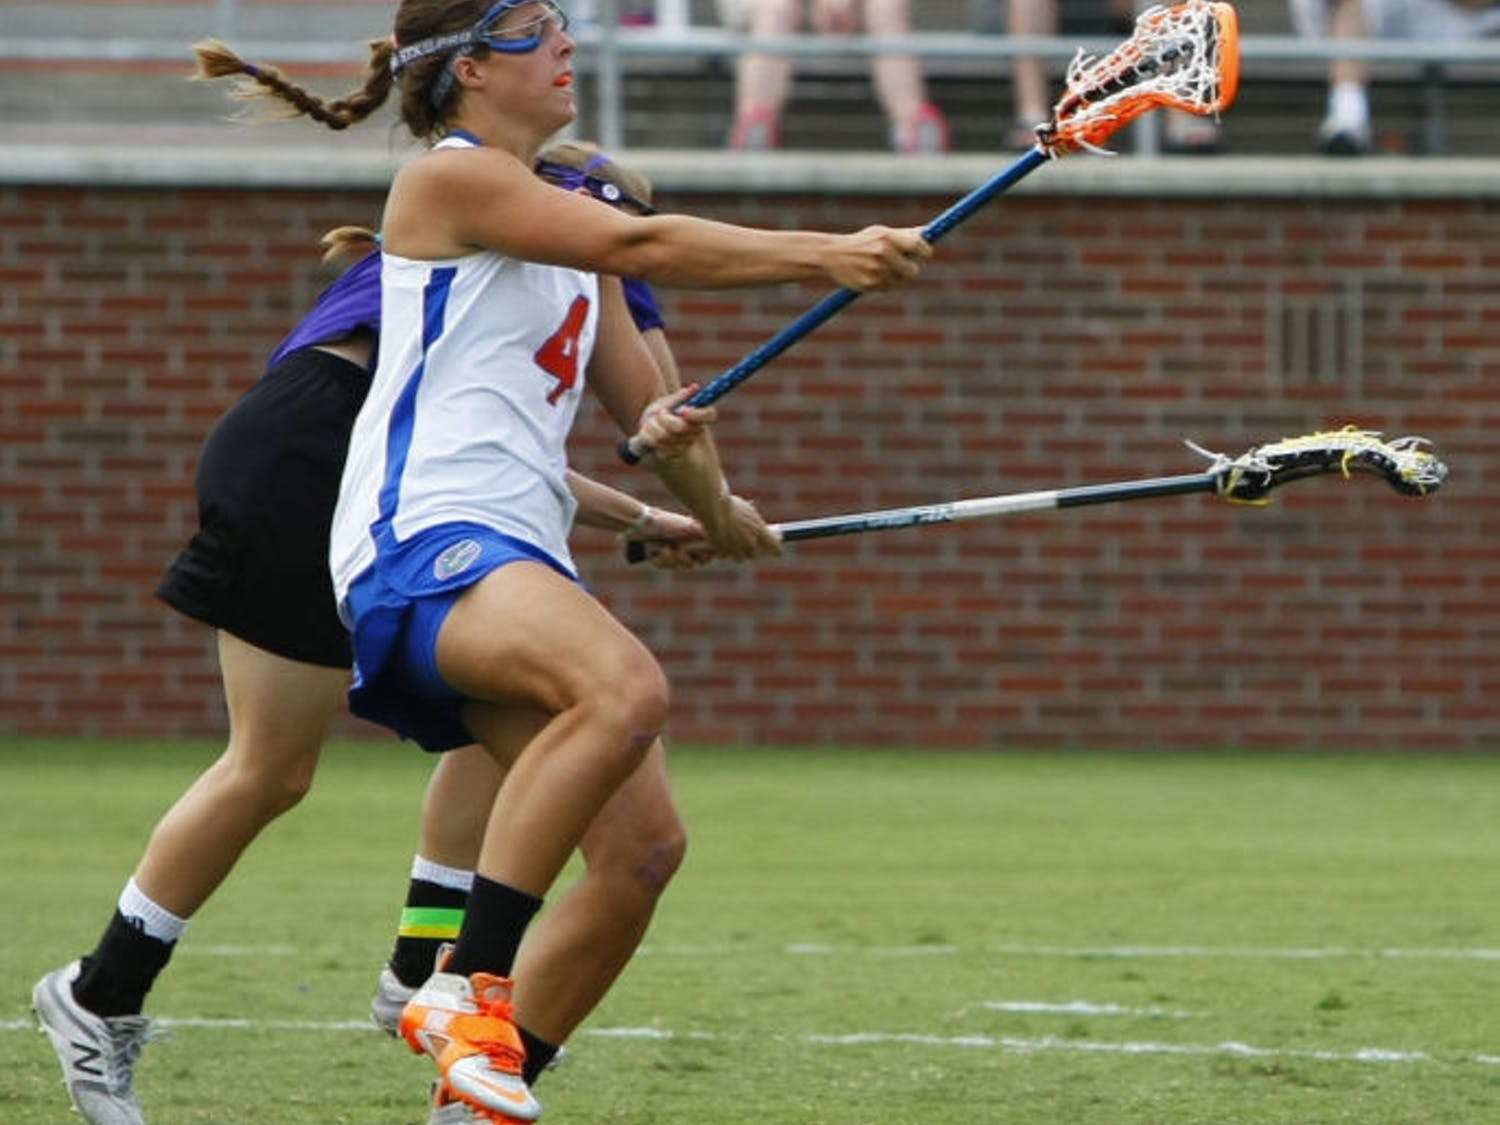 Kitty Cullen attempts a shot during Florida's 14-7 win against Northwestern on May 5 at Dizney Stadium.